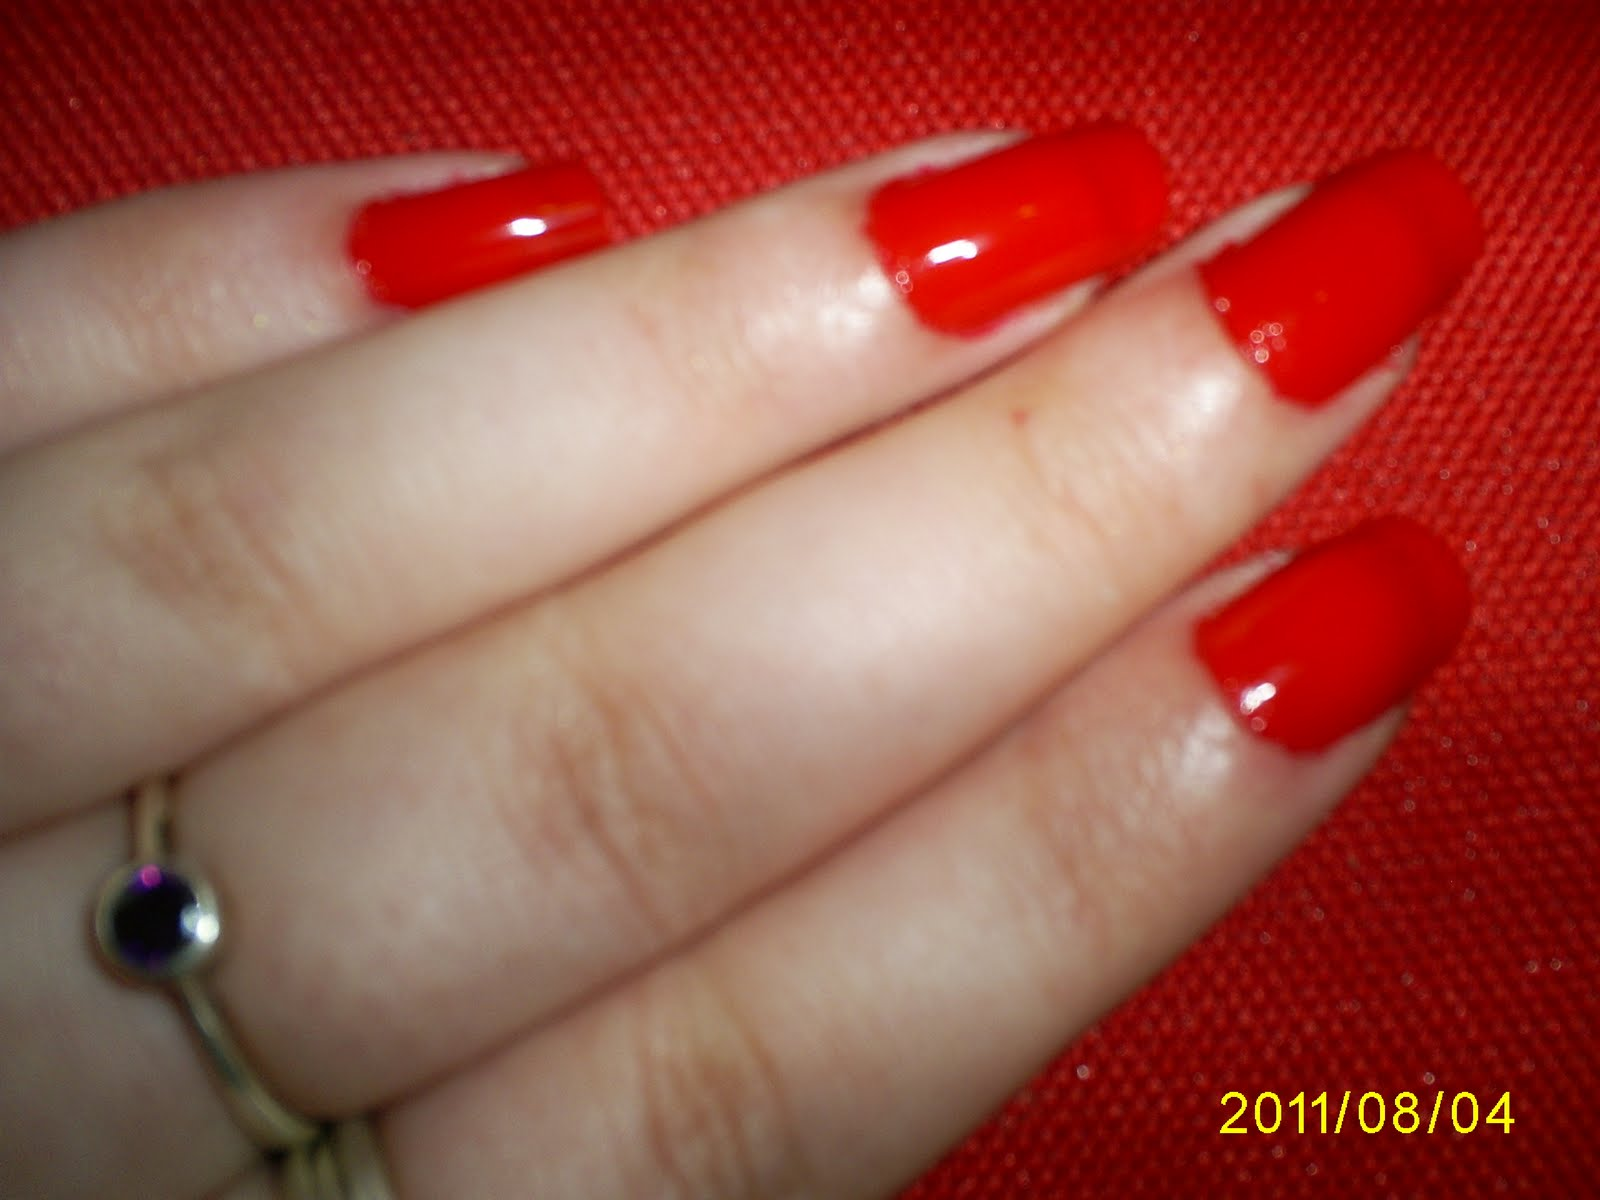 I Then Lied Various Heart Themed Stencils From My Kiss Nail Artist Paint Stencil Kit Mdk01 To The Nails Of Left Hand And Carefully Painted